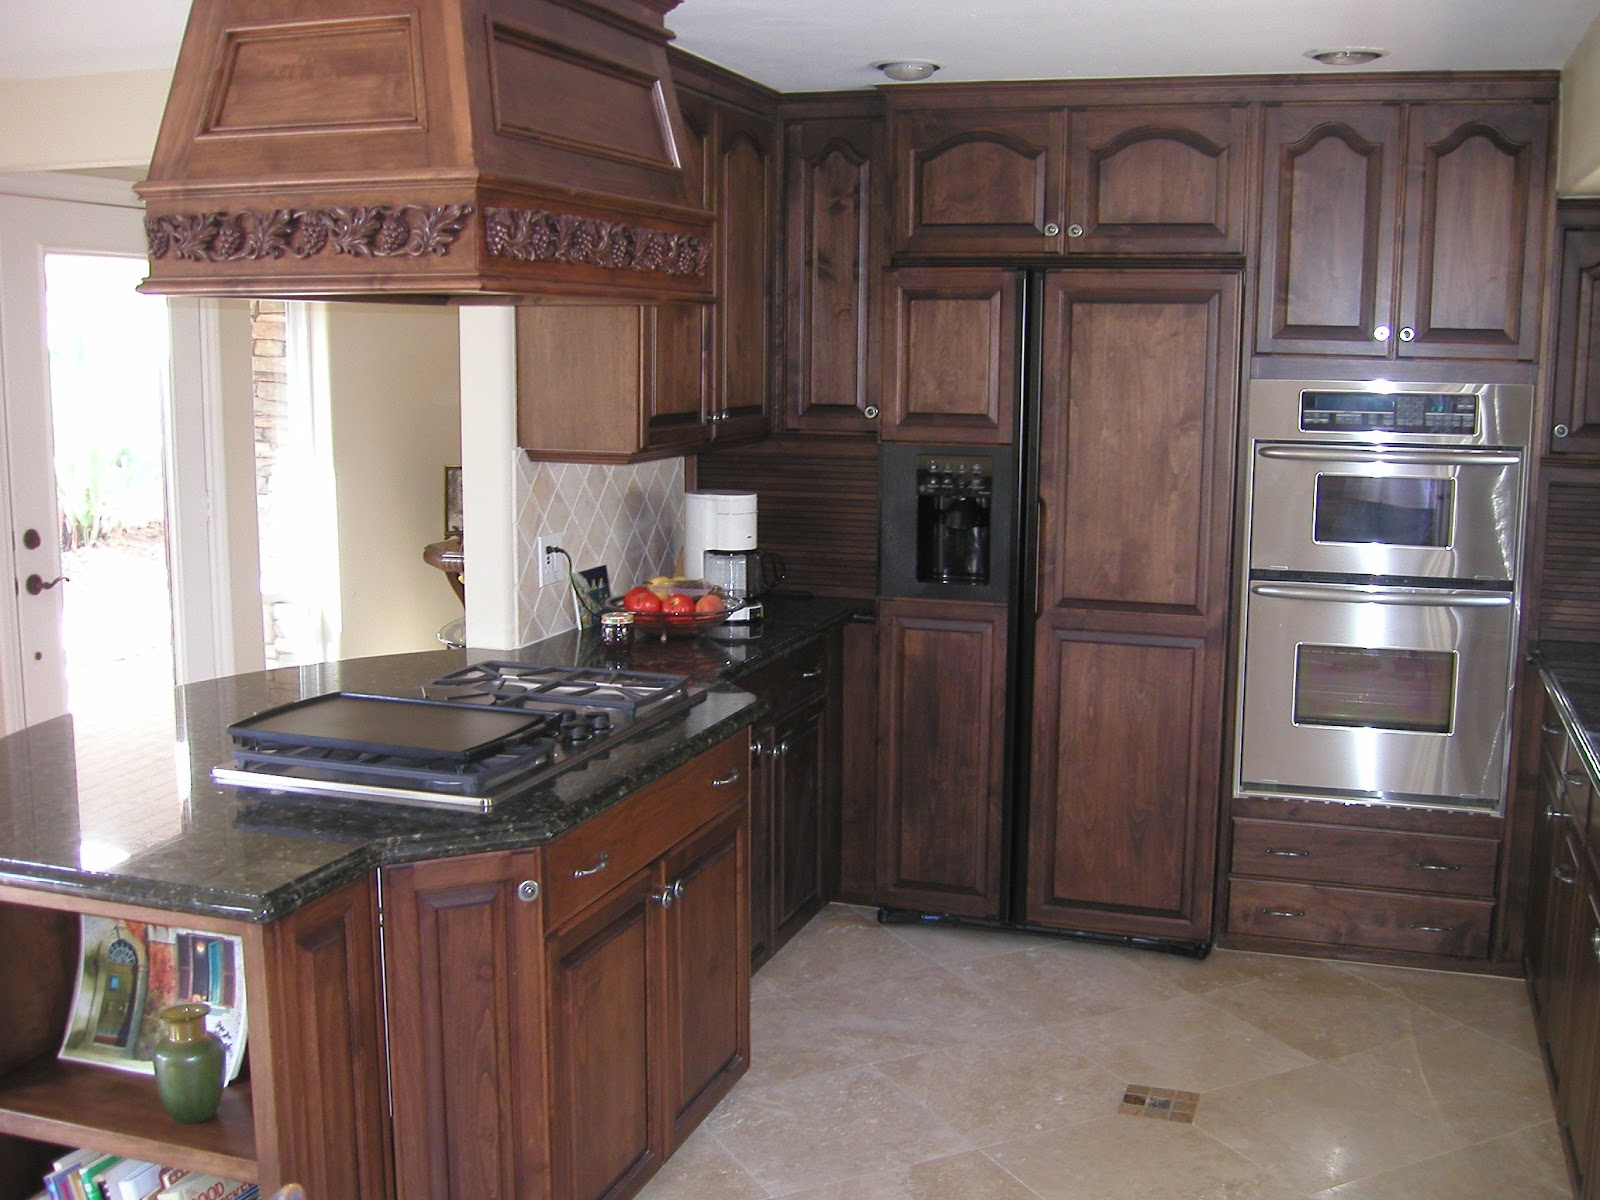 Home design ideas oak kitchen cabinets design ideas - Kitchen cupboards ideas ...